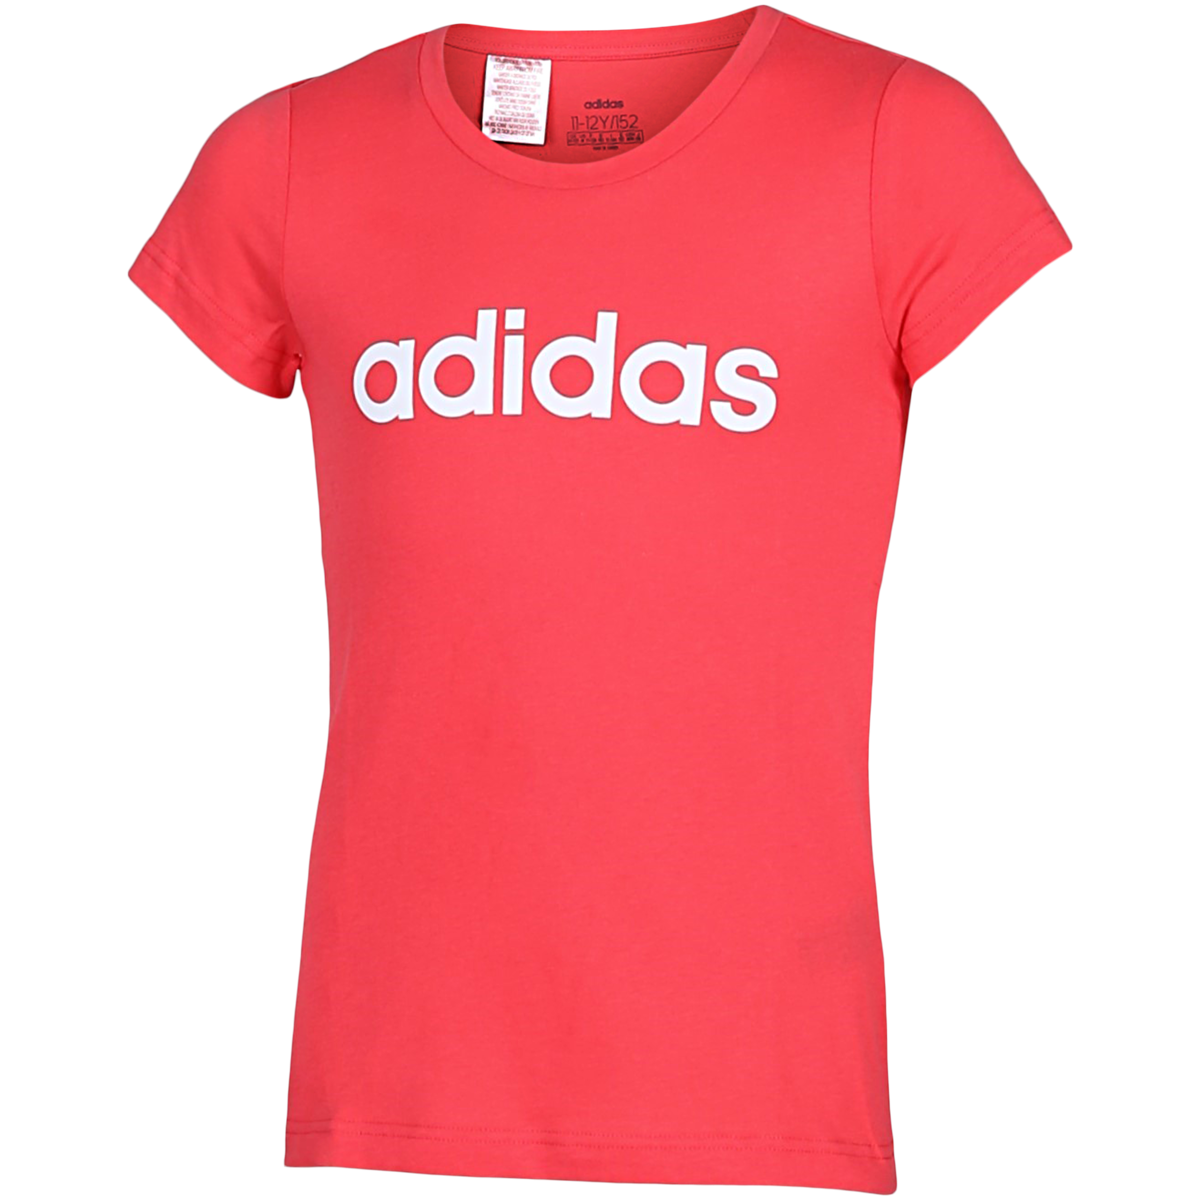 adidas - Essentials Linear T-shirt - Pink